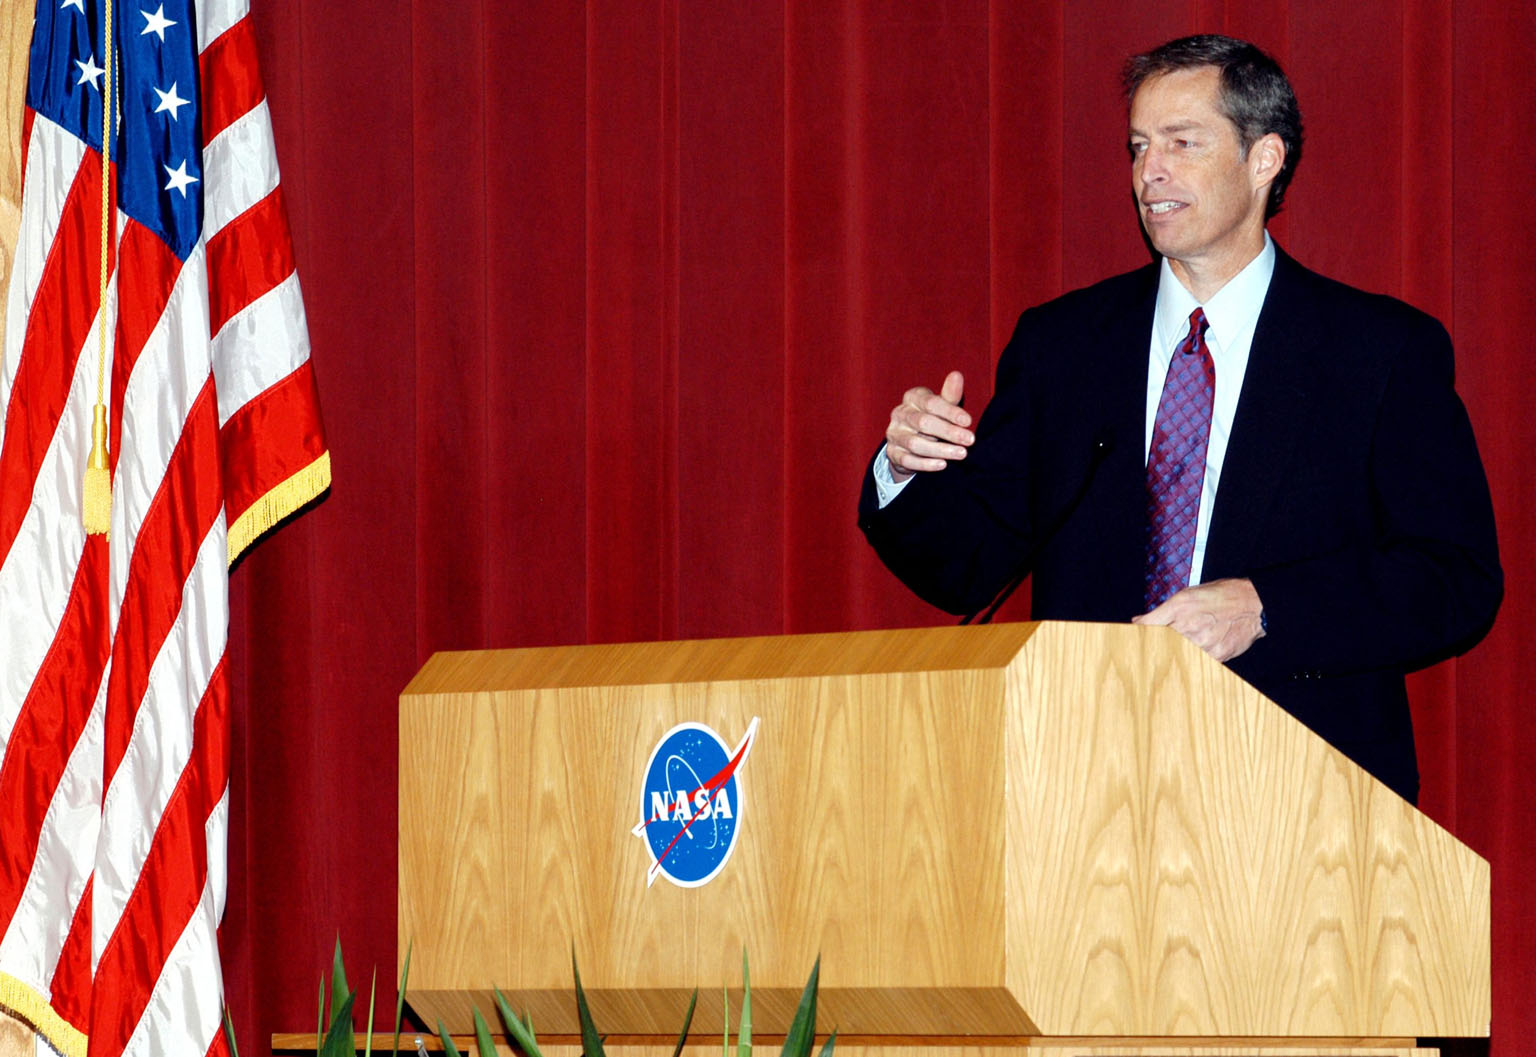 KENNEDY SPACE CENTER, FLA. -- Jim Wetherbee, astronaut and Technical Assistant to the Director of Safety and Mission Assurance at Johnson Space Center addresses KSC employees assembled in the Training Auditorium for a Culture Change Process All Hands Meeting. The purpose of the meeting was for employees to gain further insight into the Agency?s Vision for Space Exploration and the direction cultural change will take at KSC in order to assume its role within this vision. Other participants included James W. Kennedy, KSC director; Jim Jennings, Deputy Associate Administrator for Institutions and Asset Management; Lynn Cline, Deputy Associate Administrator for Space Flight; and Bob Sieck, former Director of Space Shuttle Processing at KSC. Following their remarks, members of the panel entertained questions and comments from the audience.